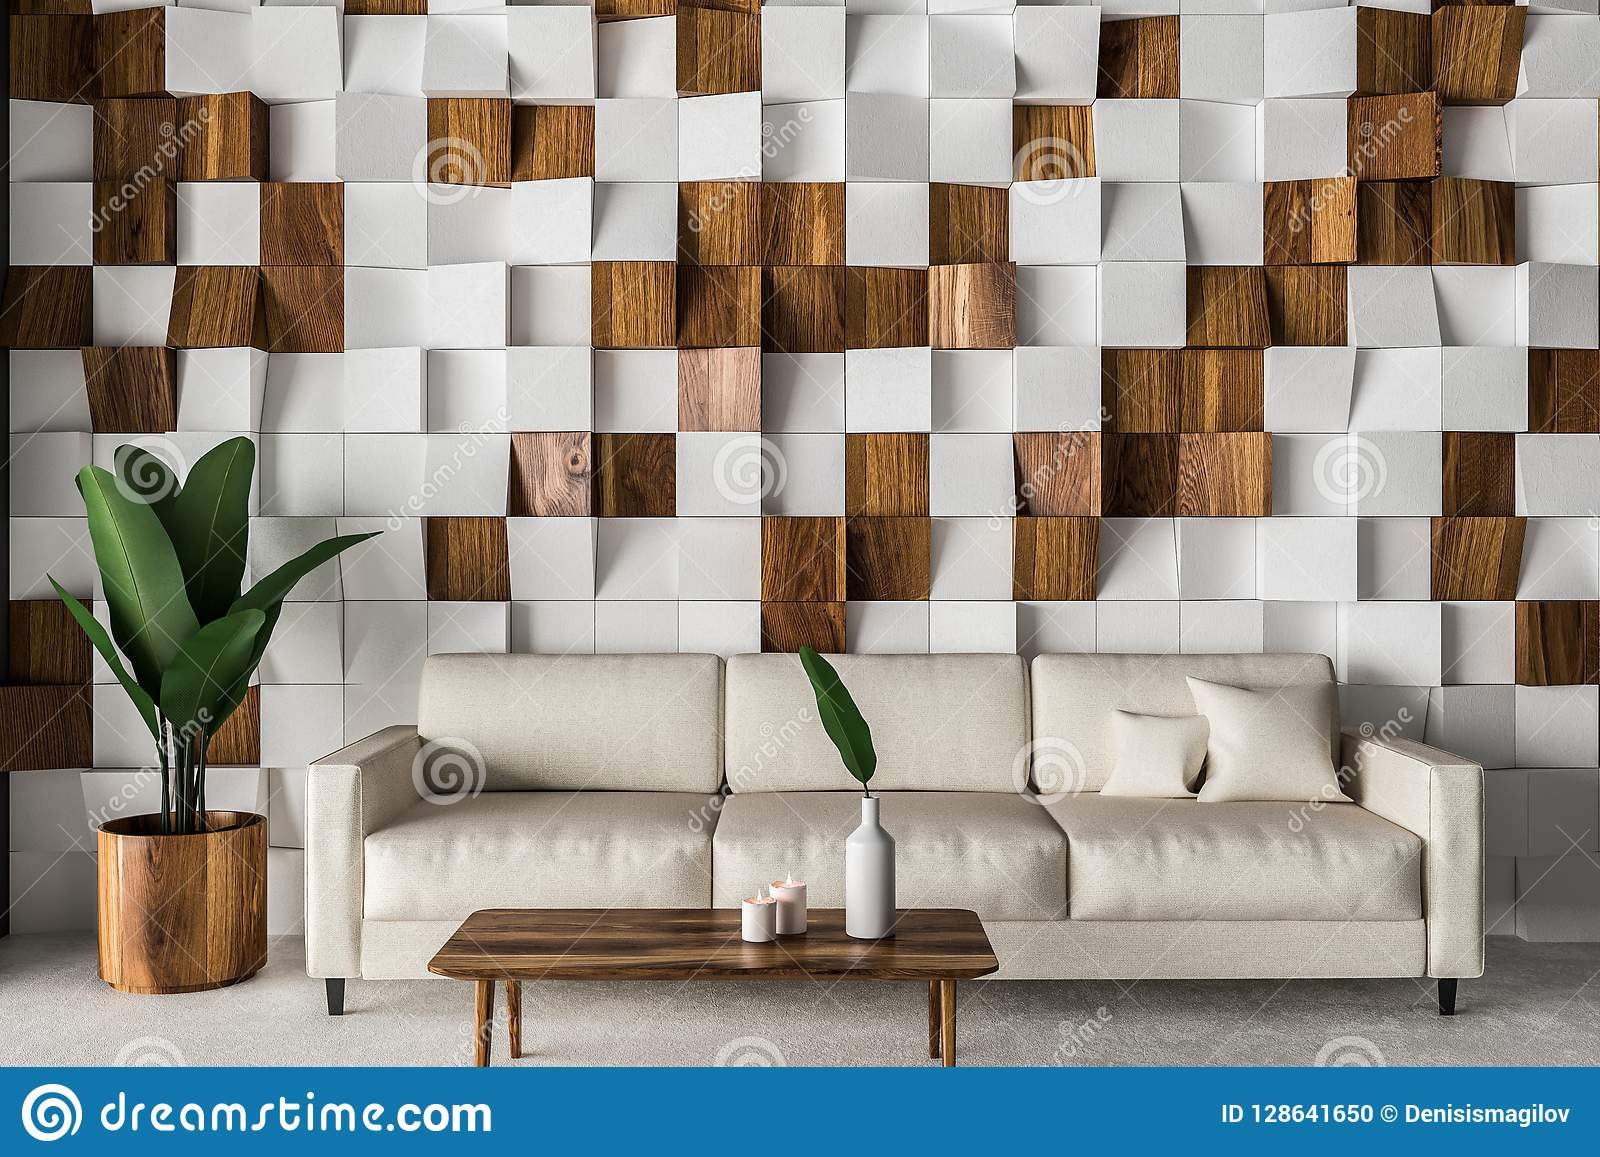 tiled living room simple tv unit design for wooden tiles interior white sofa stock illustration and wall with concrete floor coffee table 3d rendering